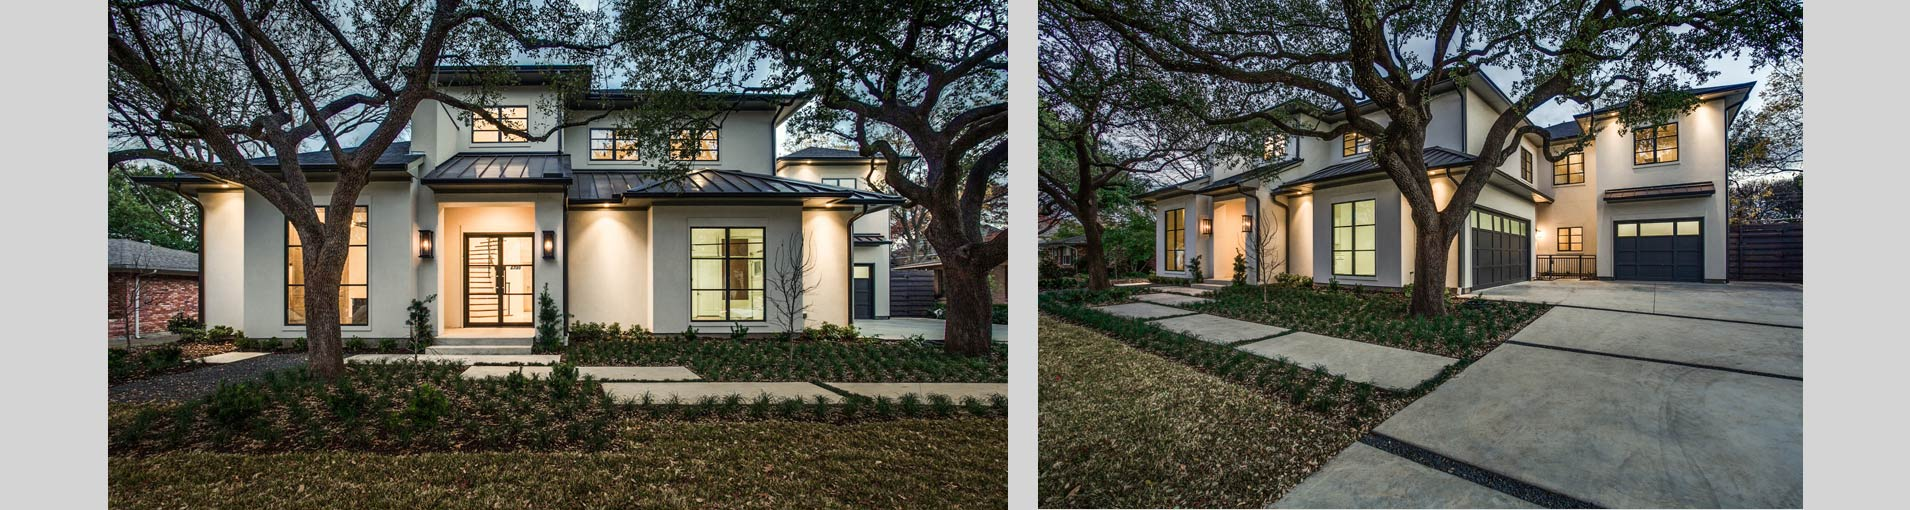 Worth area home builder new construction and remodeling in the dallas ft